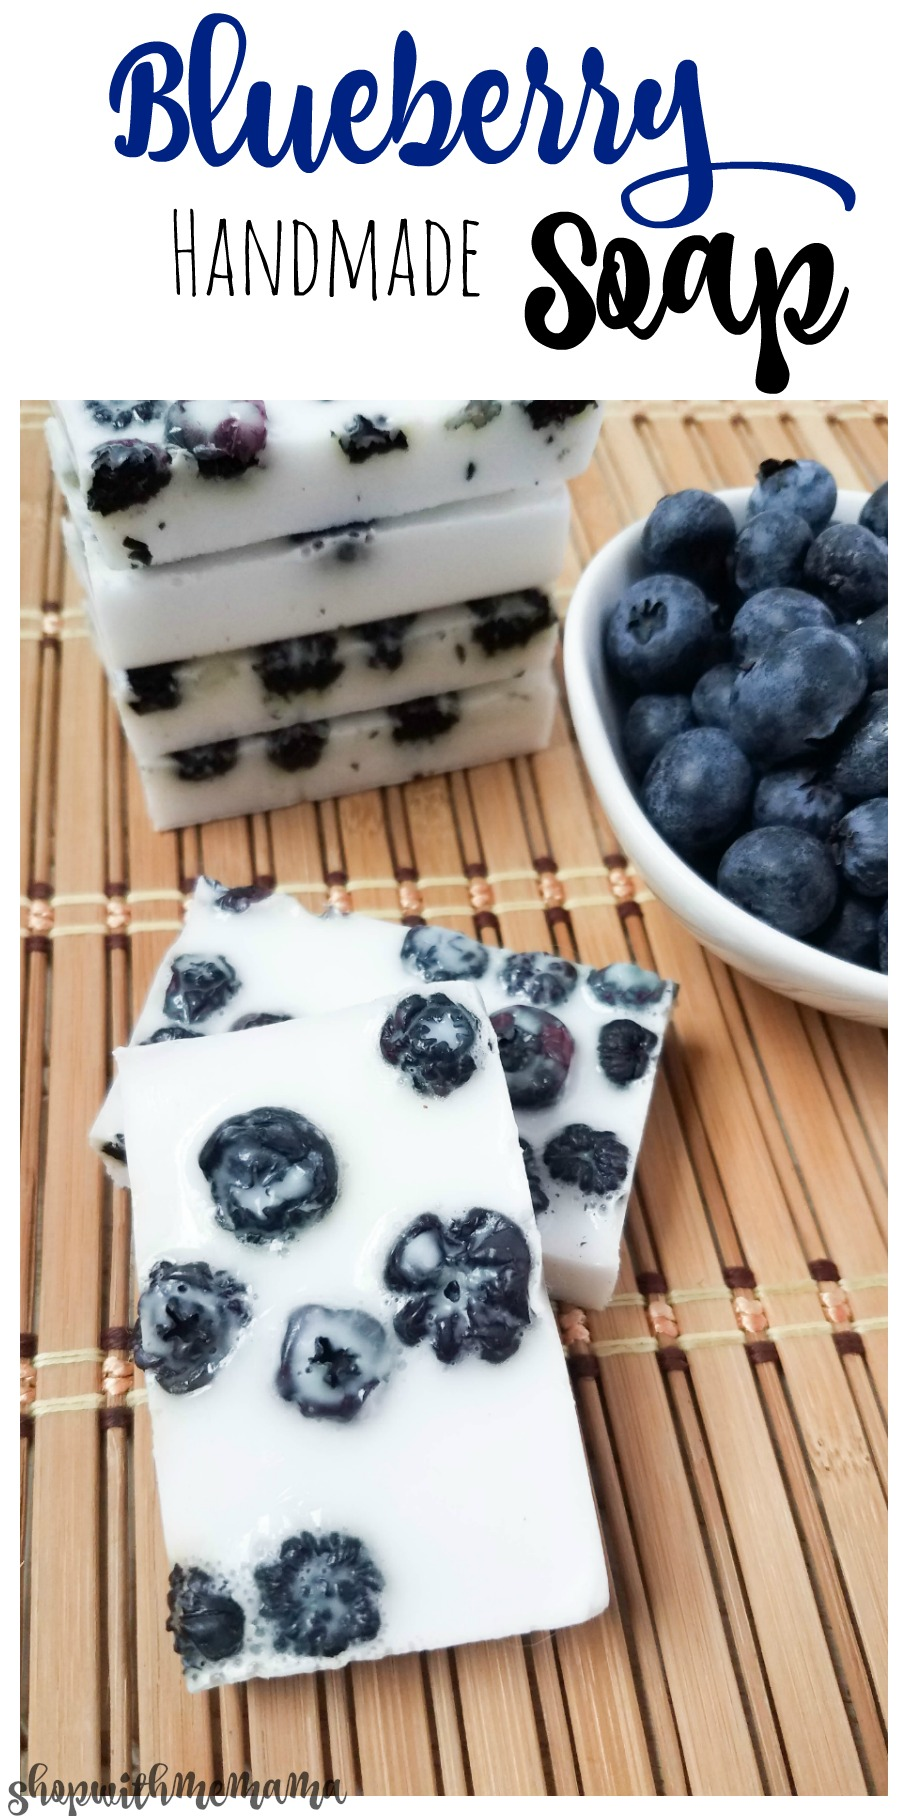 Blueberry handmade soap